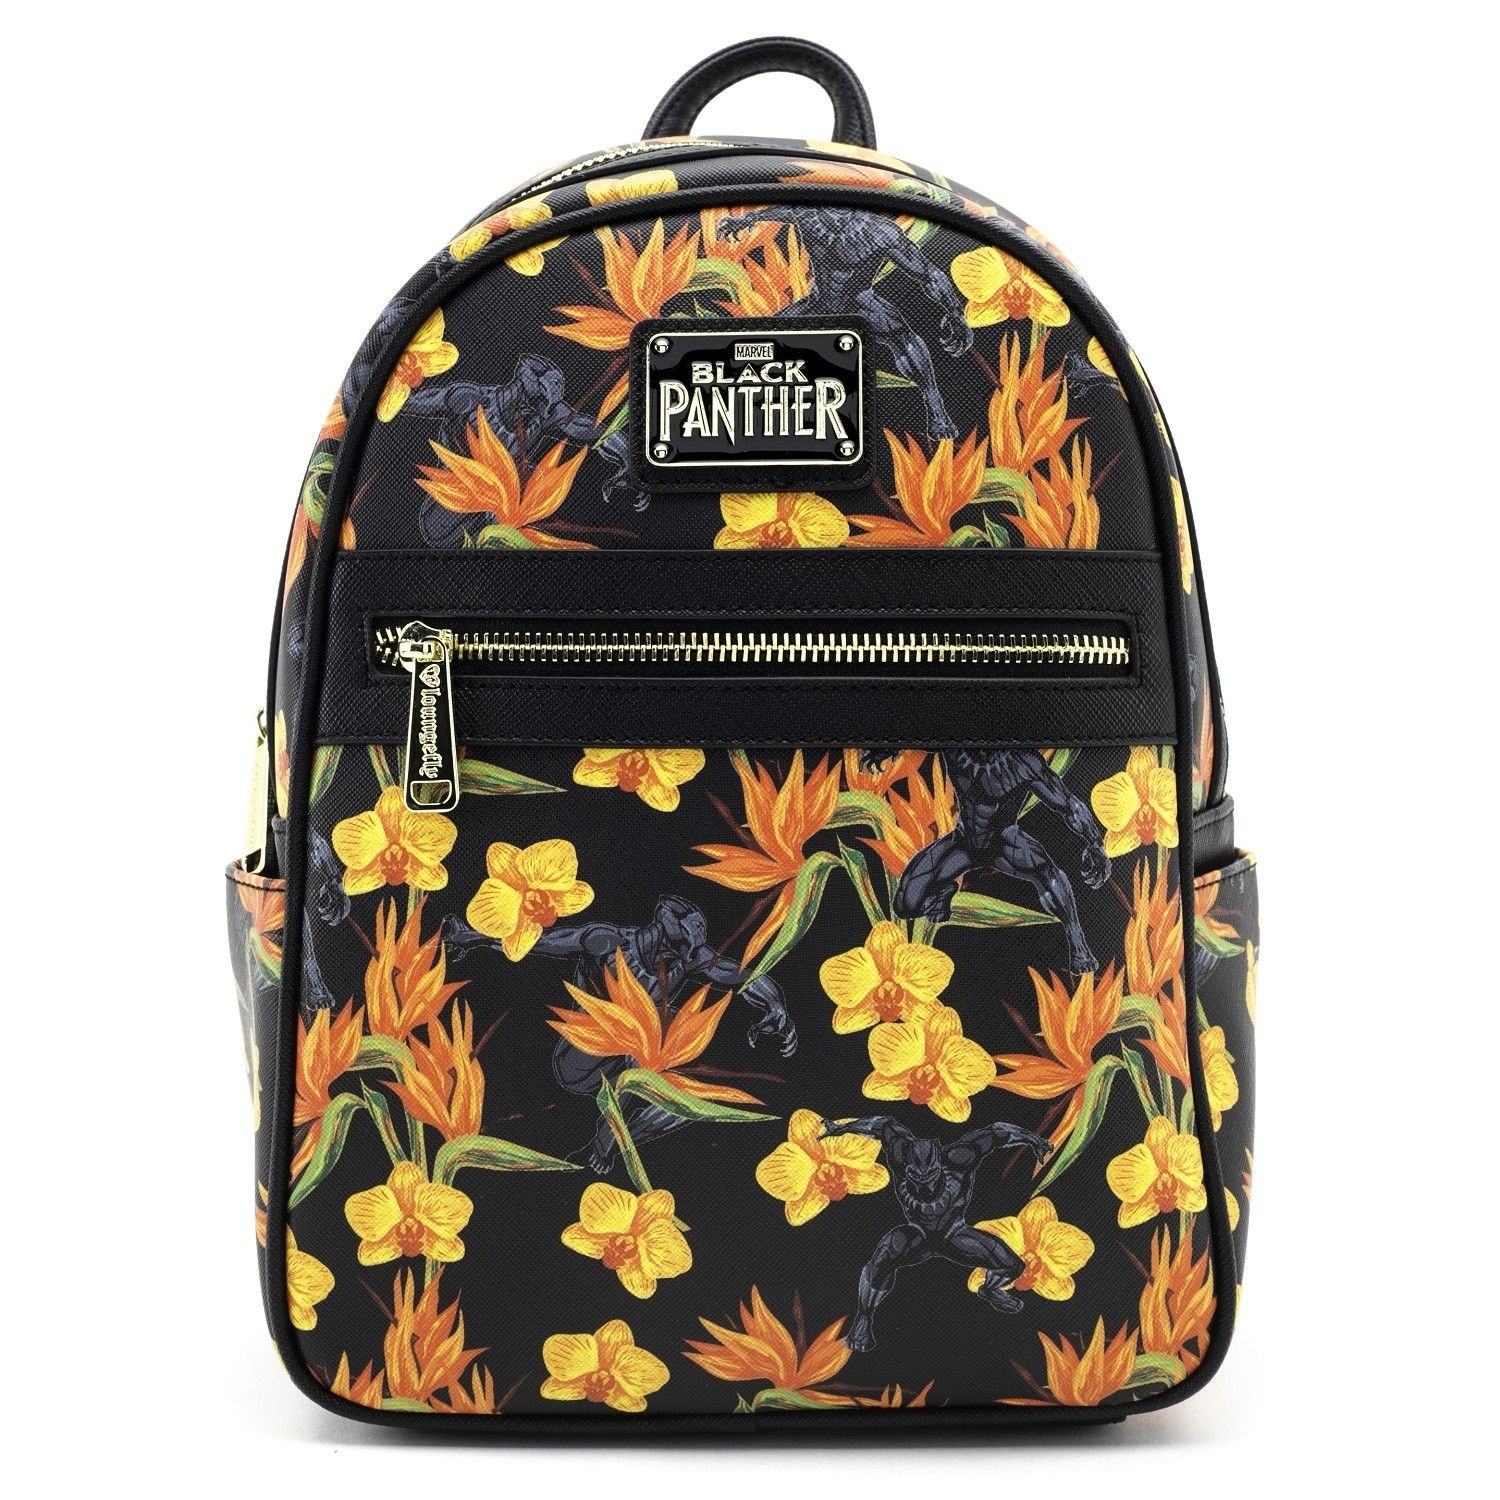 e6b4ab5adca Loungefly x Marvel Black Panther Floral Print Mini Backpack - Backpacks -  Bags